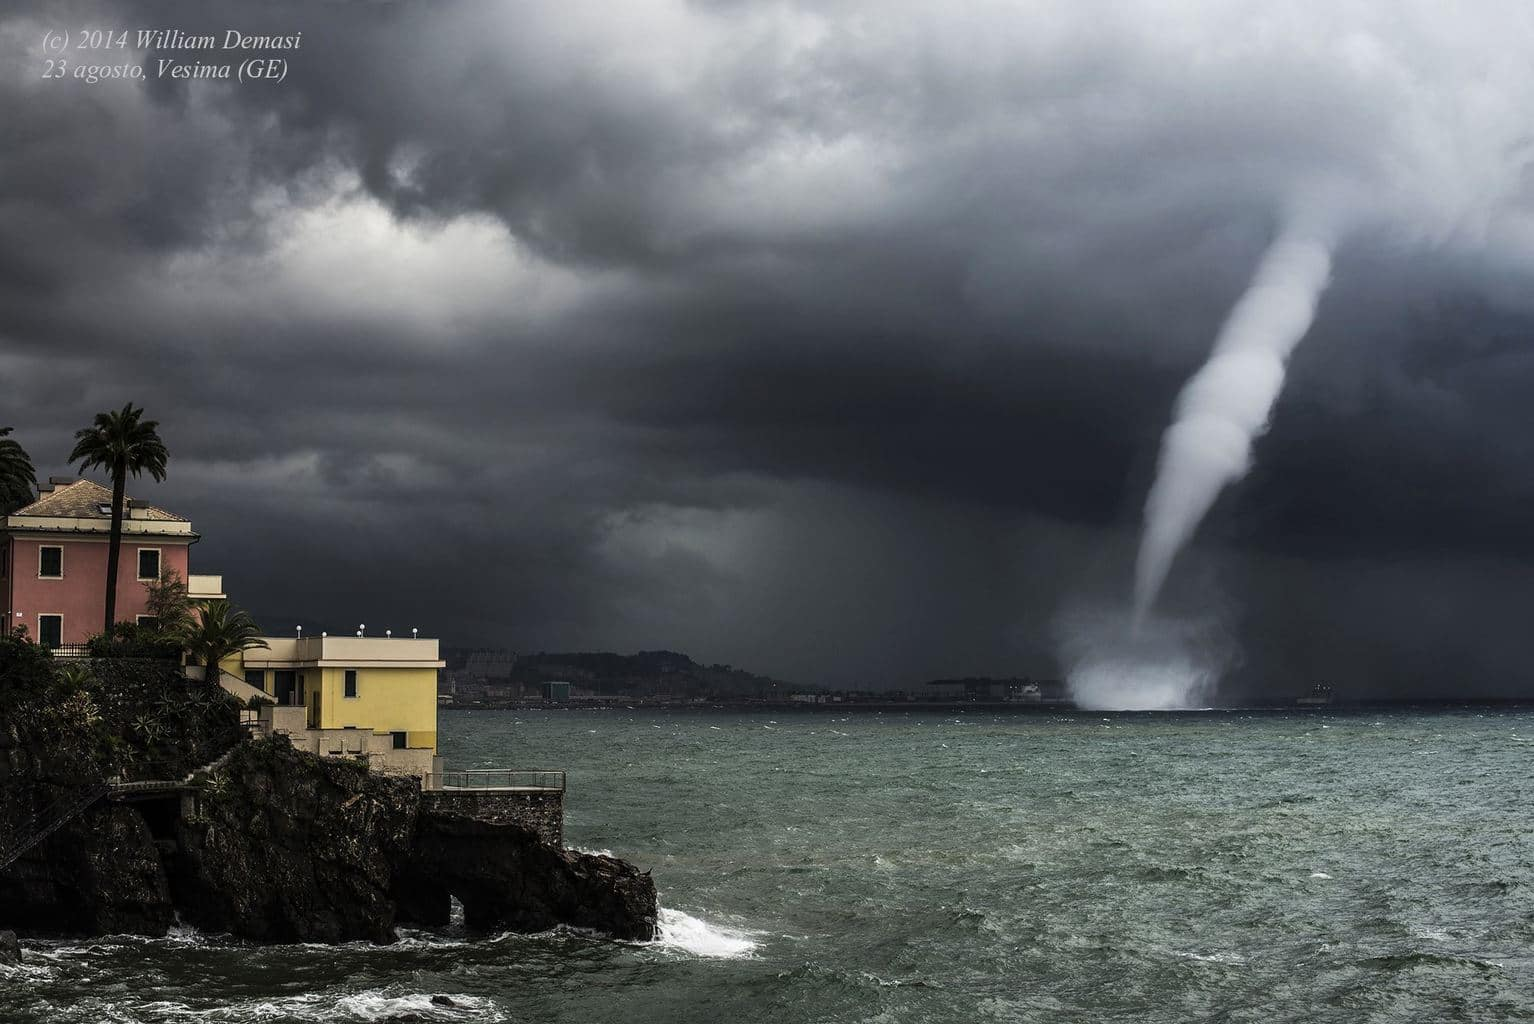 Waterspout near Vesima (GE) Italy - August 23,2014